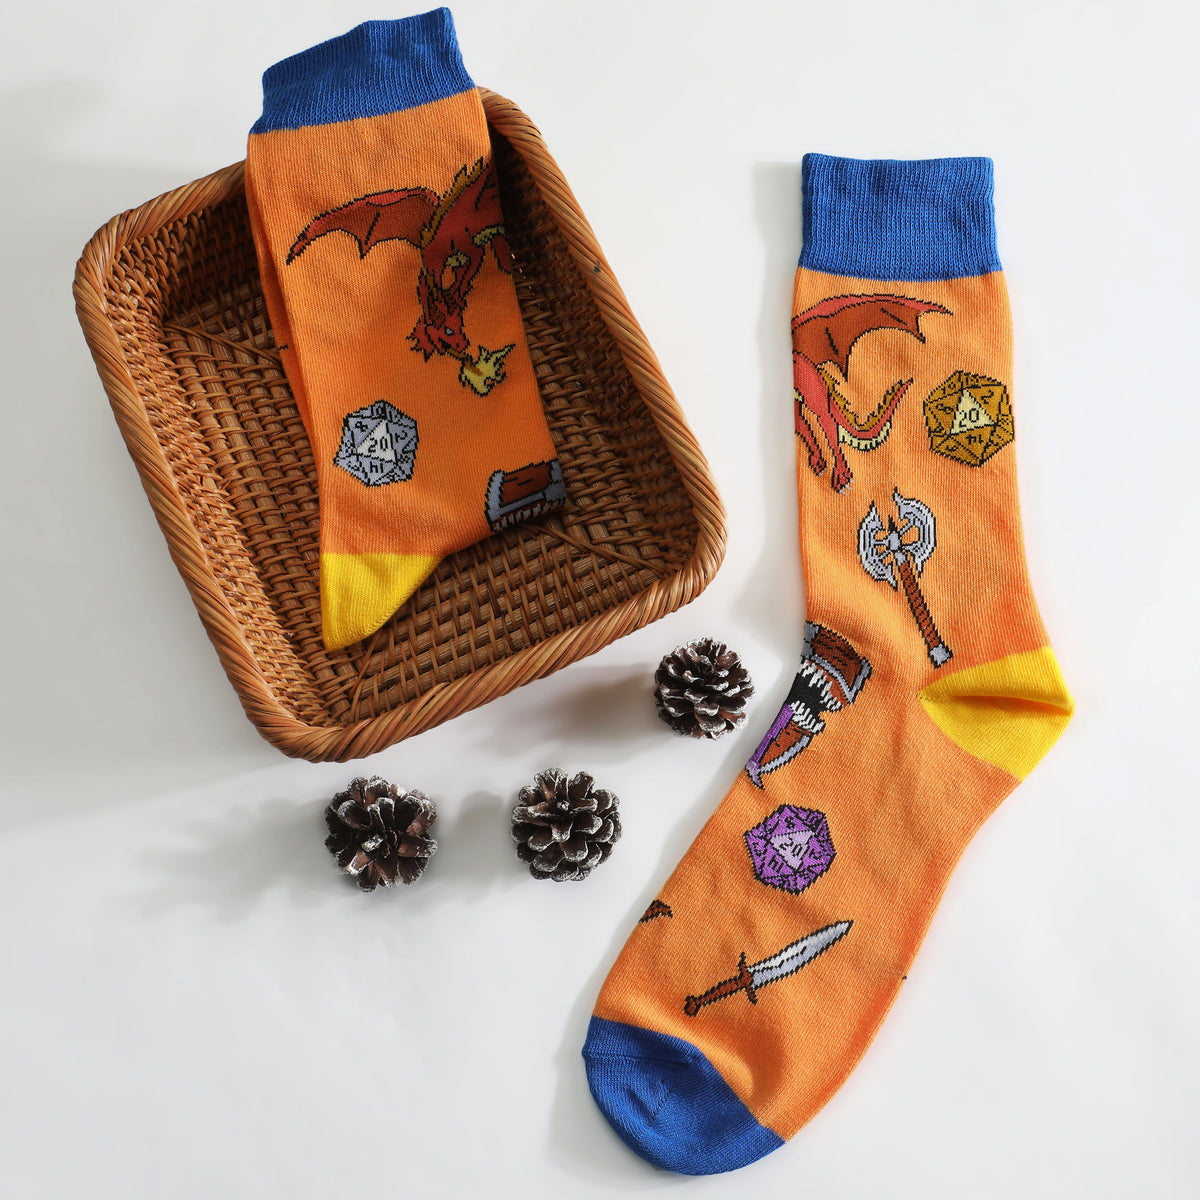 2 Pairs of Dungeons and Dragons DND Crew Socks Blue and Orange US Size 8 - 12 (EU 41-45)- only Available in US